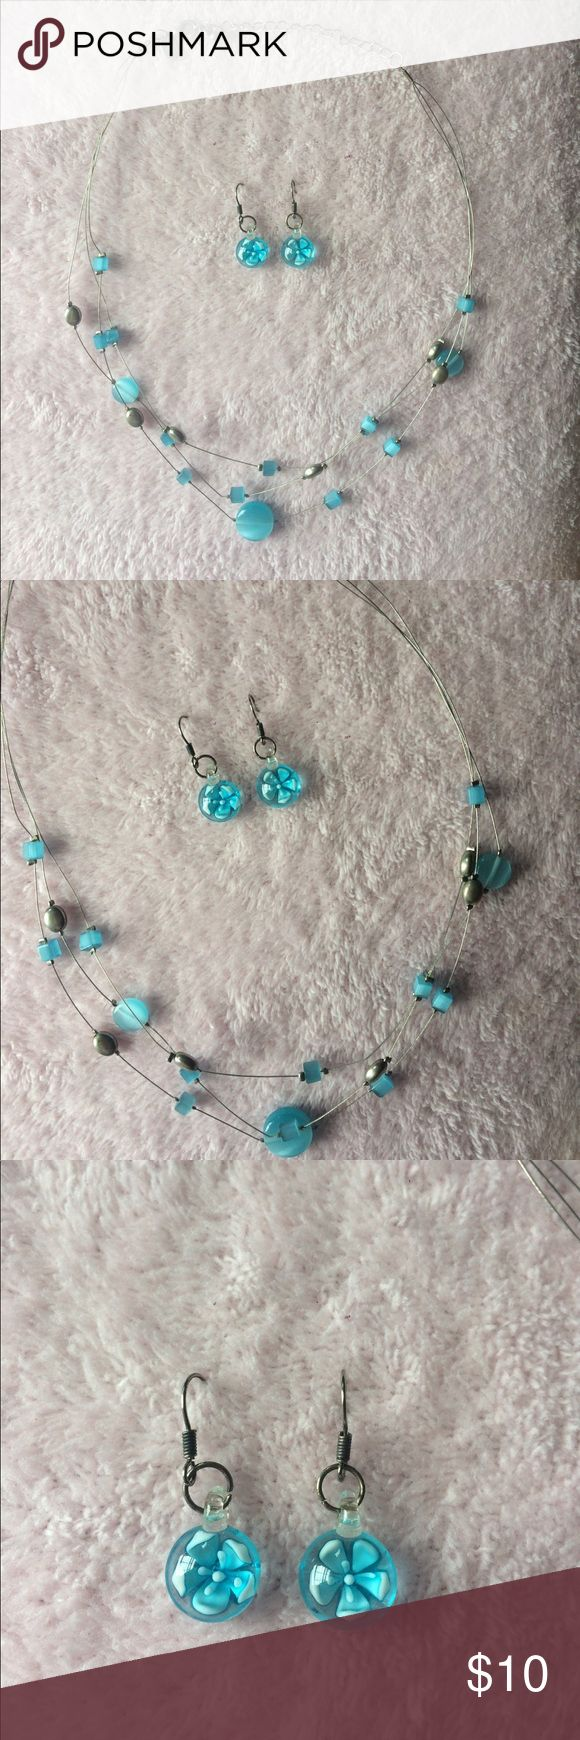 Lia Sophia Necklace and Earring Bundle! 曆 This is a baby blue and sterling silver necklace and earring bundle by Lia Sophia! Never worn!  Lia Sophia Jewelry